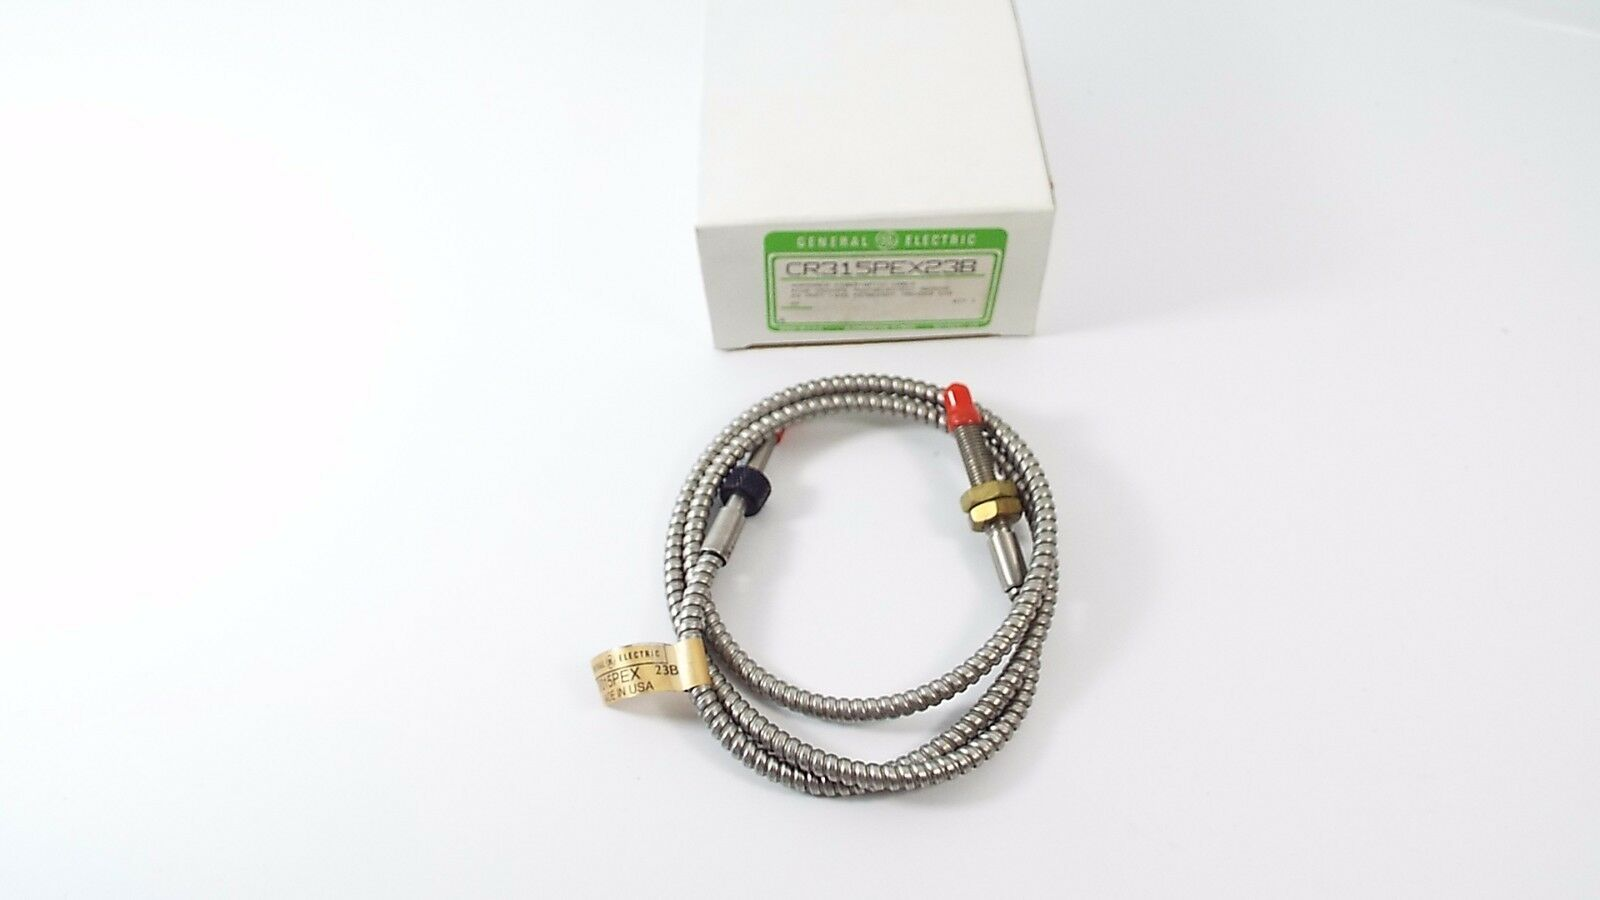 GENERAL ELECTRIC CR315PEX-23B FIBER OPTIC CABLE ARMORED 3FT